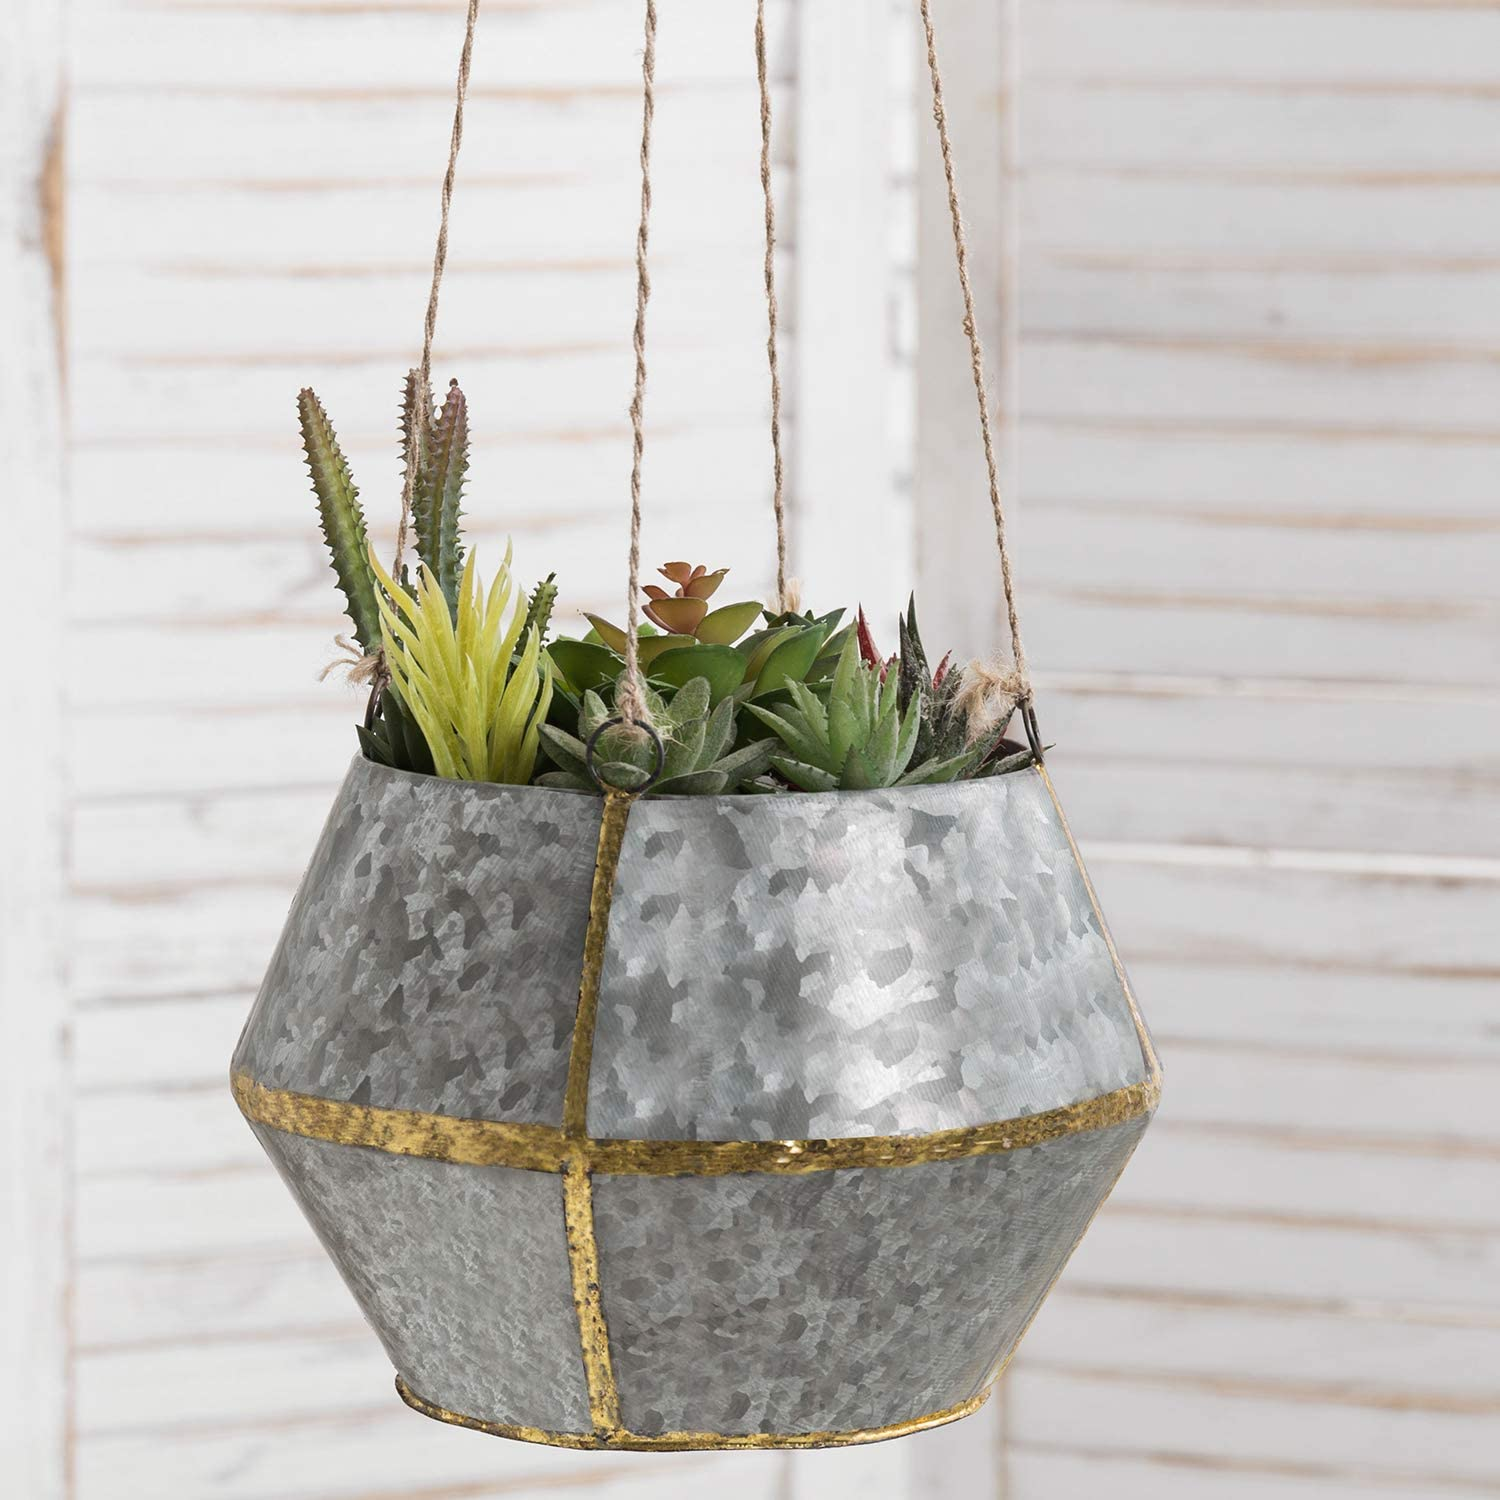 MyGift Decorative Rustic Silver Galvanized Metal Hanging Planter with Brass Tone Weld Accents & Twine Rope